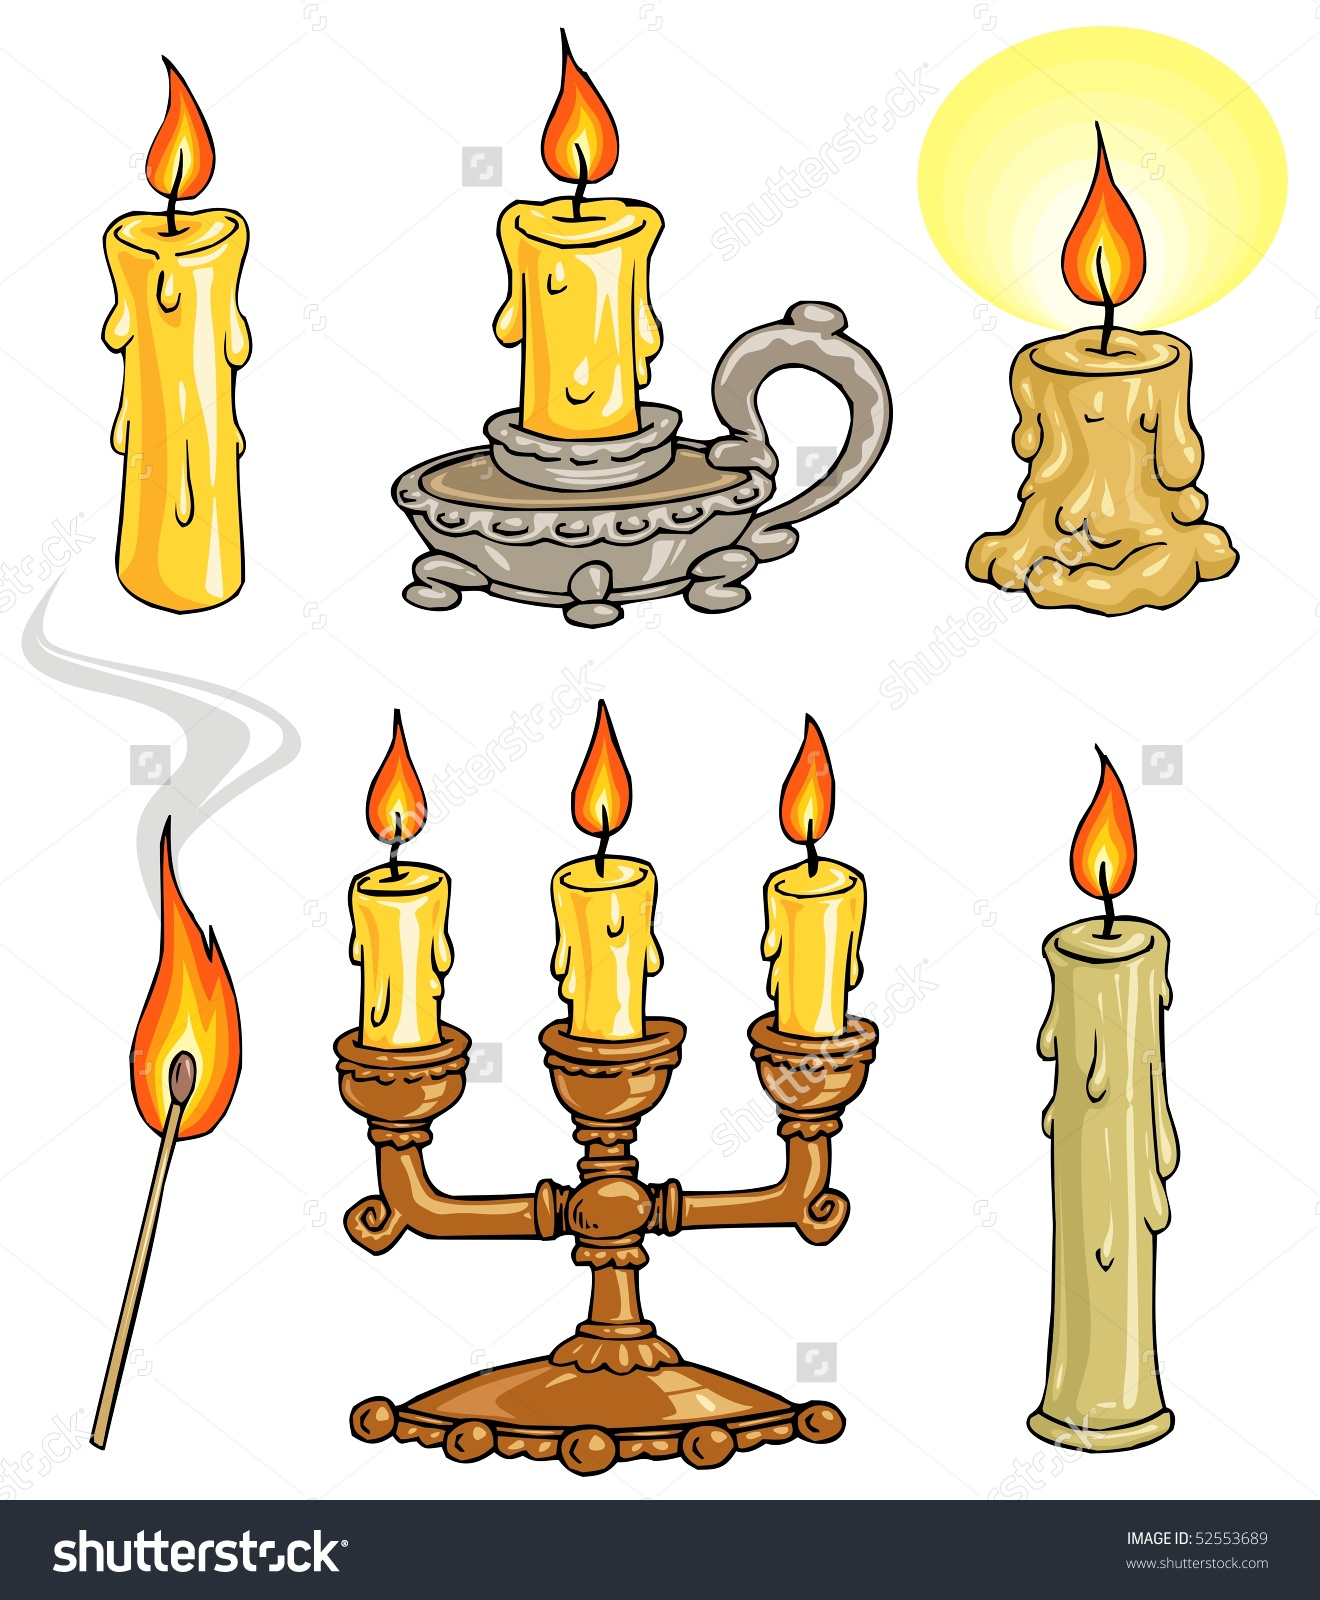 Cartoon Candles Candelabrum Illustrations Clip Art Stock Vector.